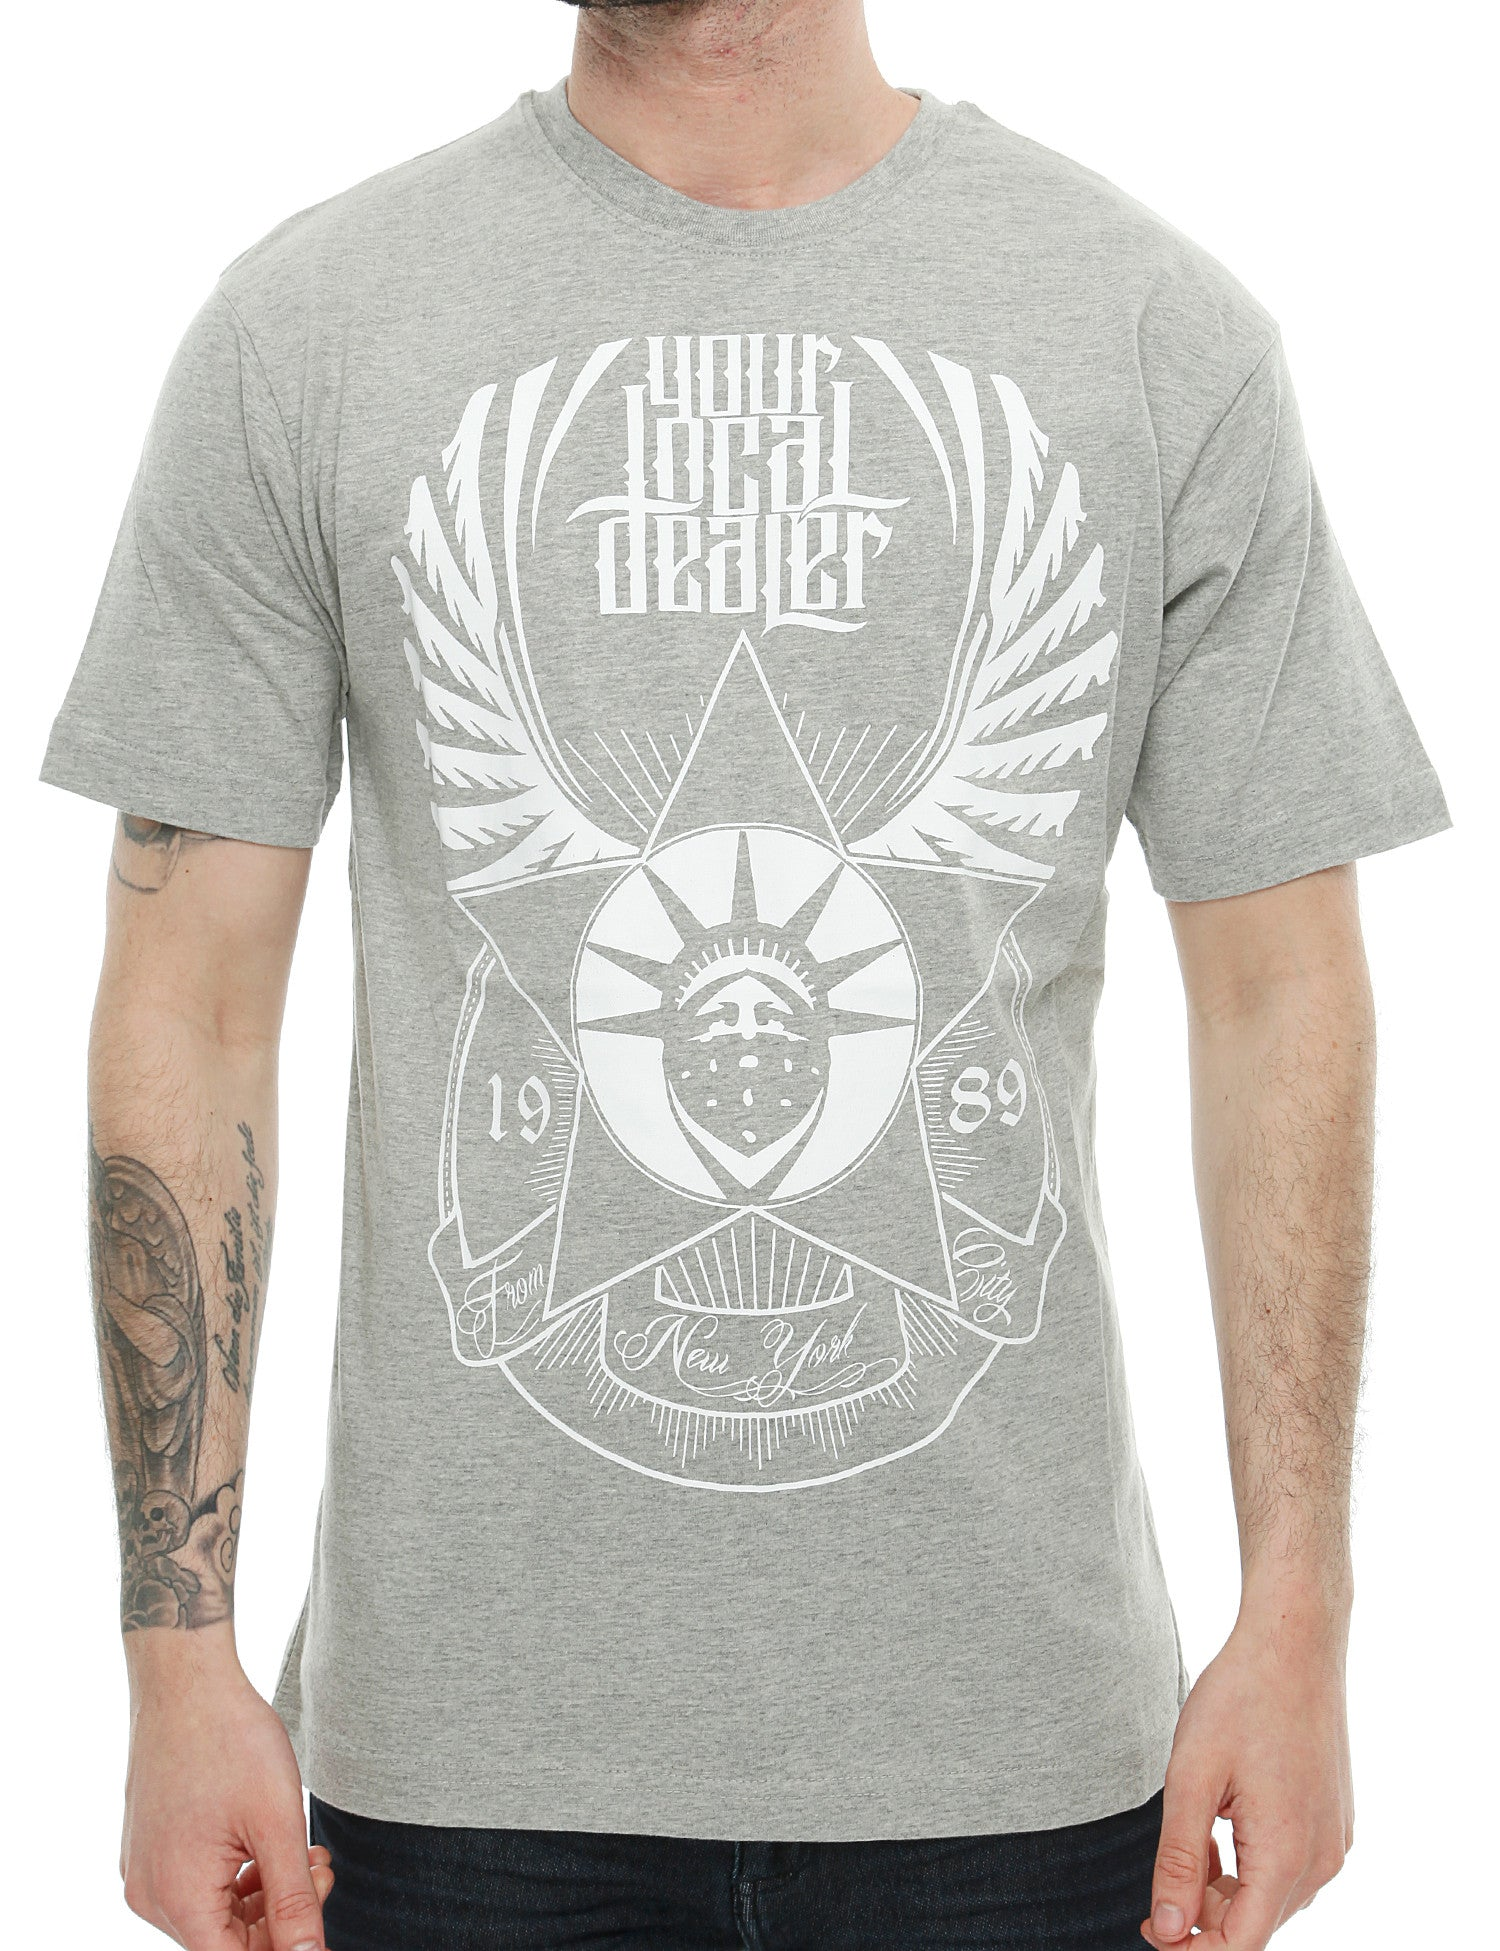 YLD Wings T-Shirt YLD16-006 Grey